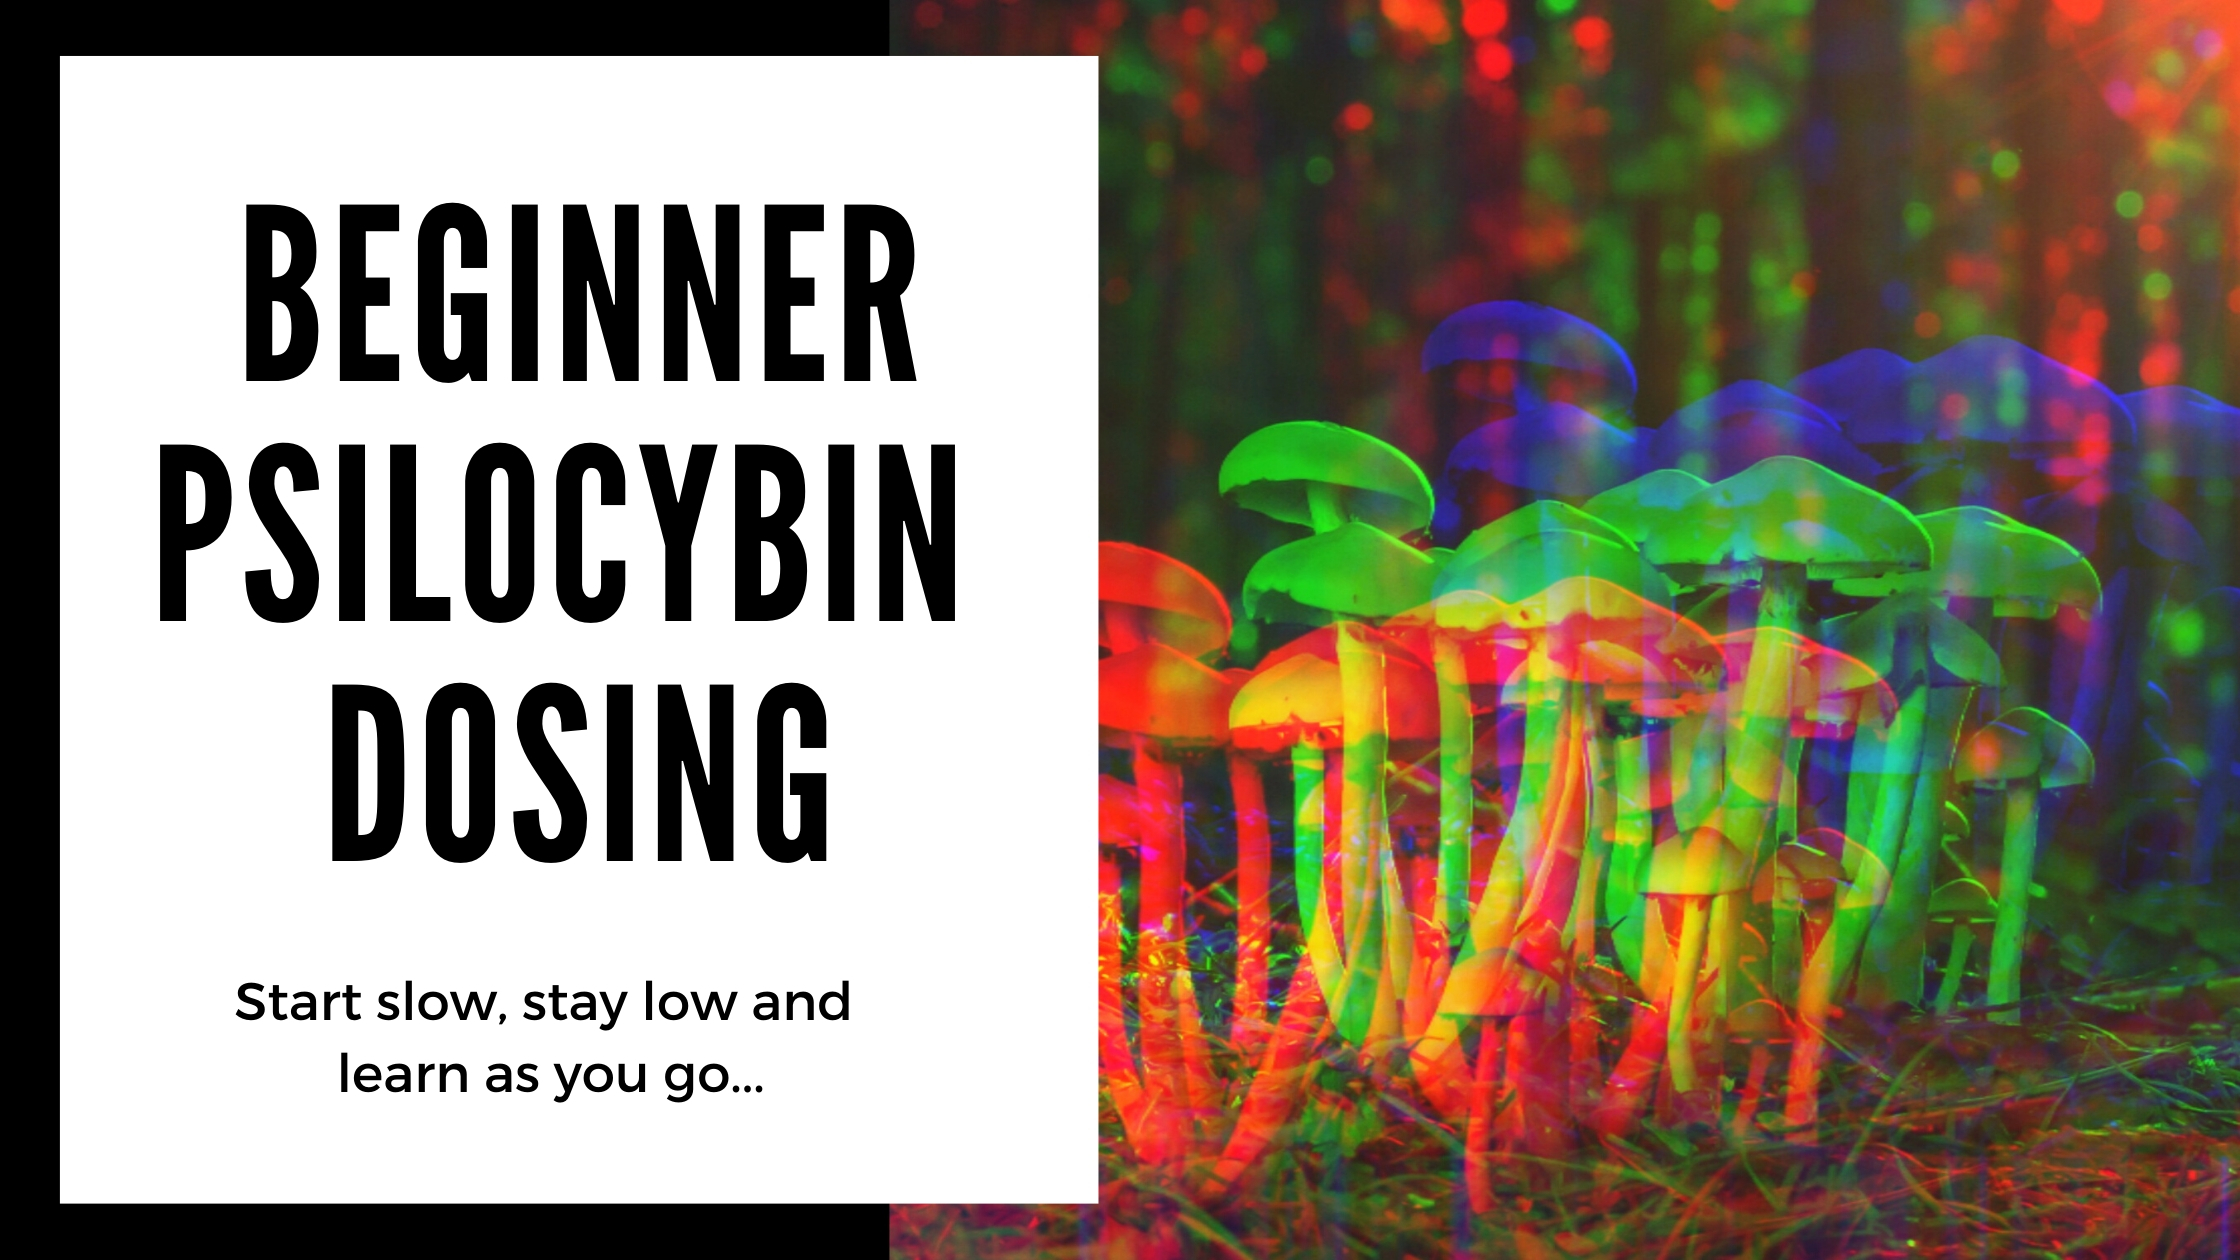 what is beginner magic mushroom dosing